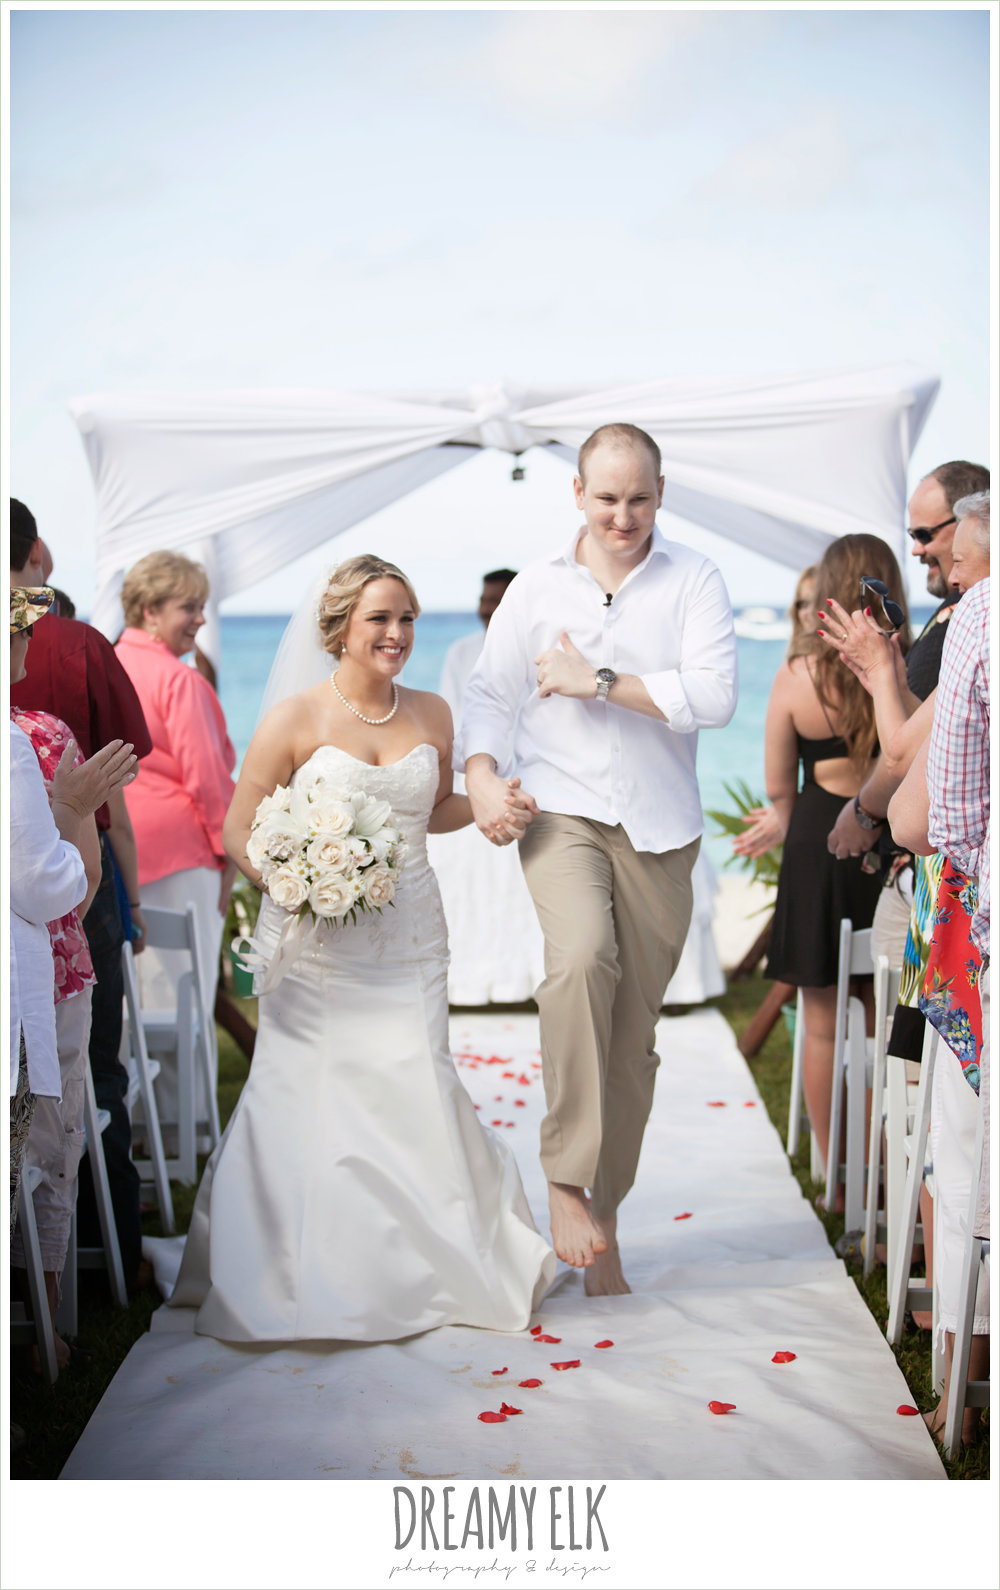 fit and flare wedding dress, groom in white shirt and khakis, outdoor destination wedding, cozumel {dreamy elk photography and design} photo